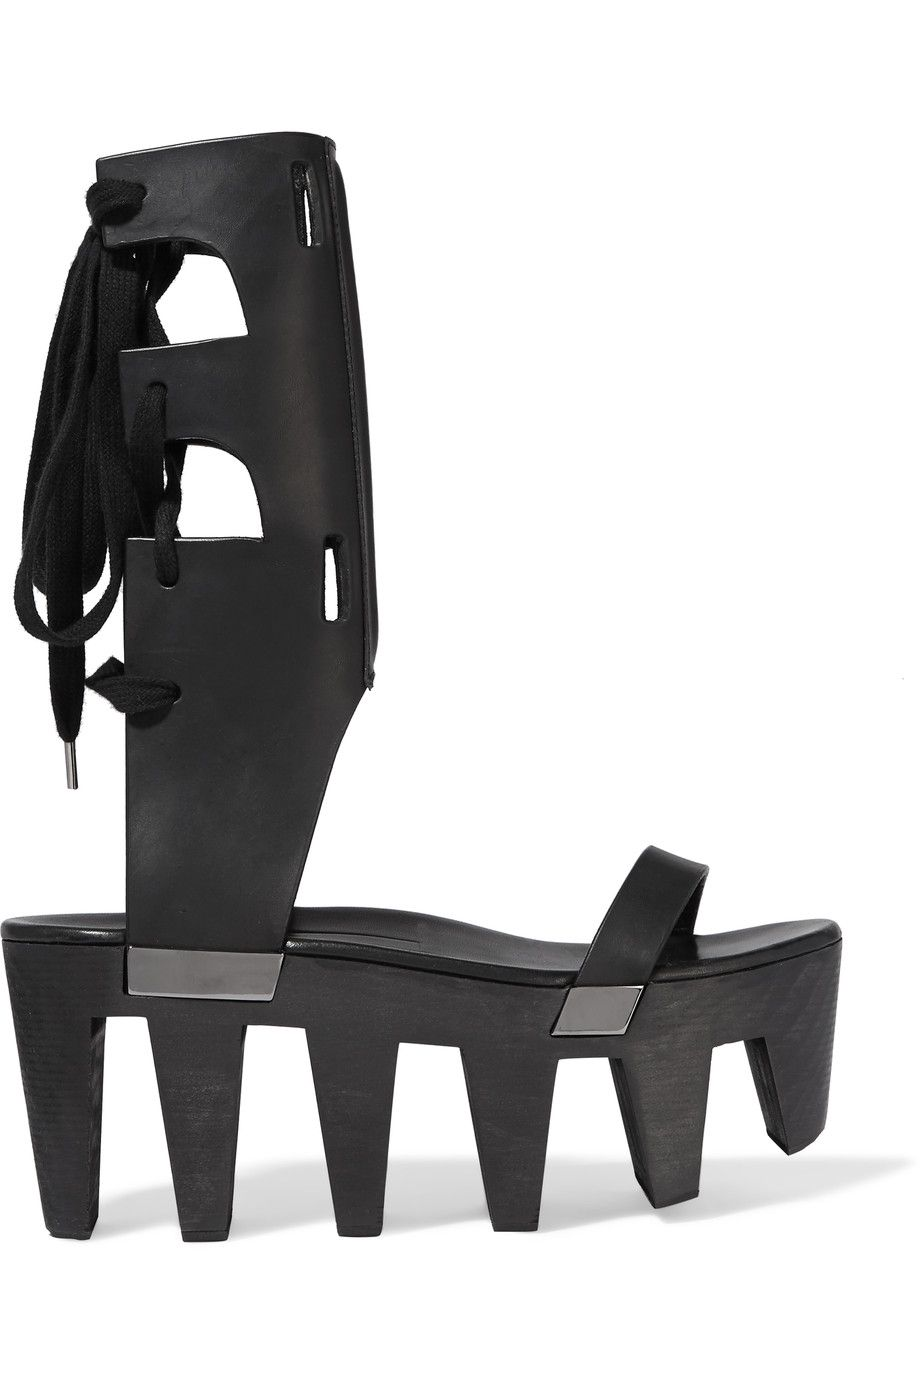 Rick Owens Leather Flatform Sandals clearance fashion Style exclusive cheap online great deals for sale cheap newest buy cheap visa payment XnrmQXW4p4